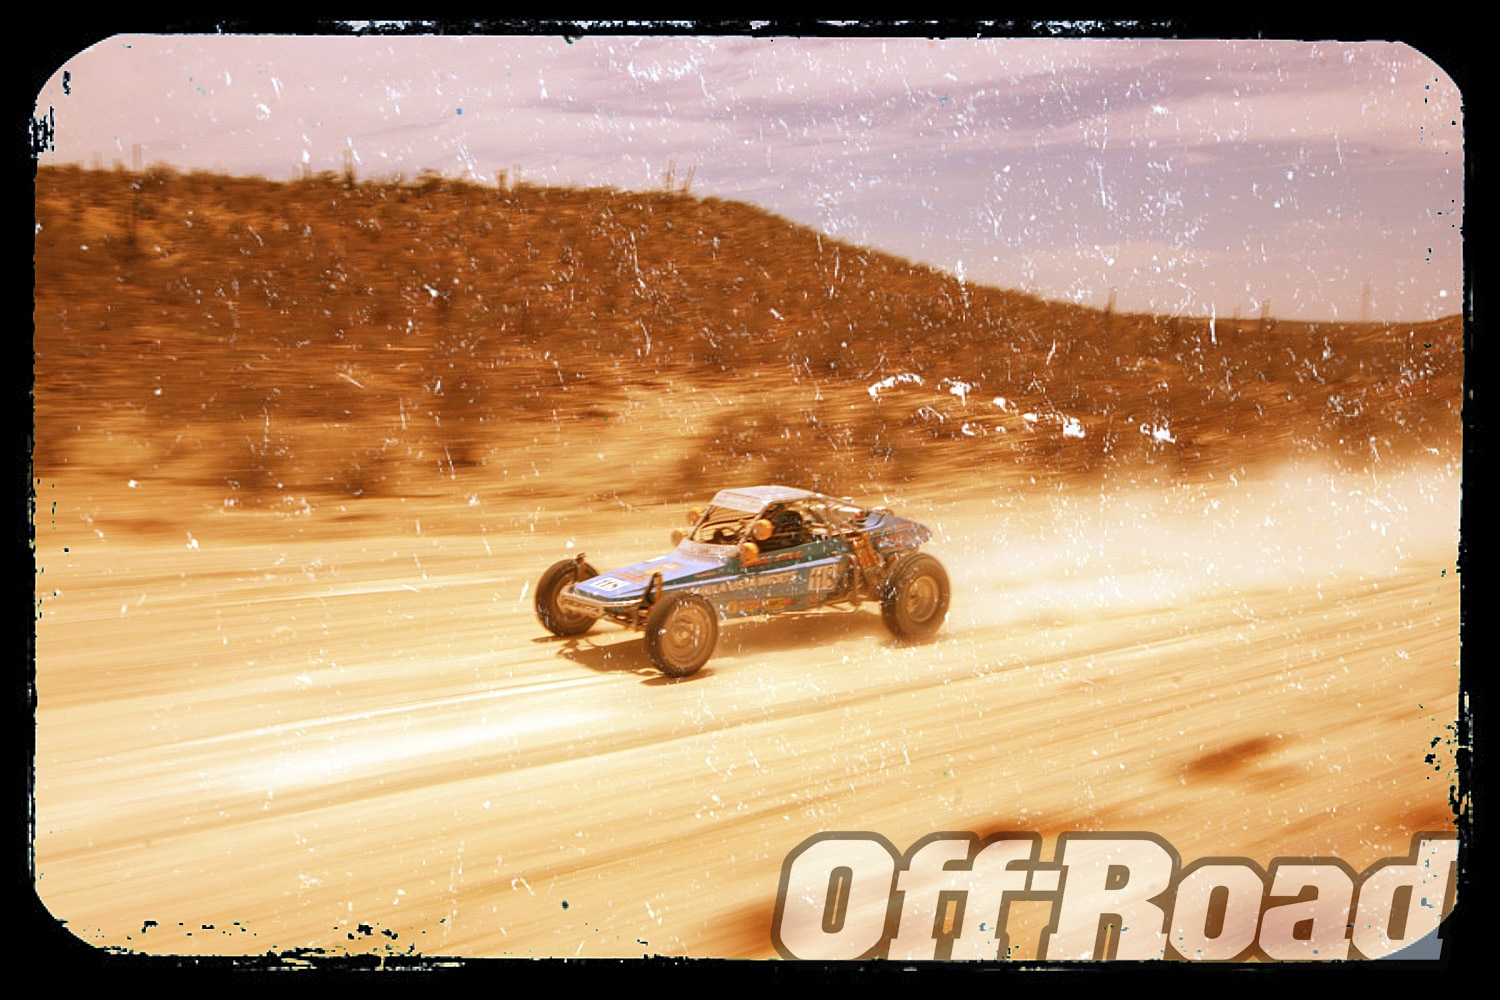 092211or 24+chenowth 1000 class 3+2011 norra mexican 1000